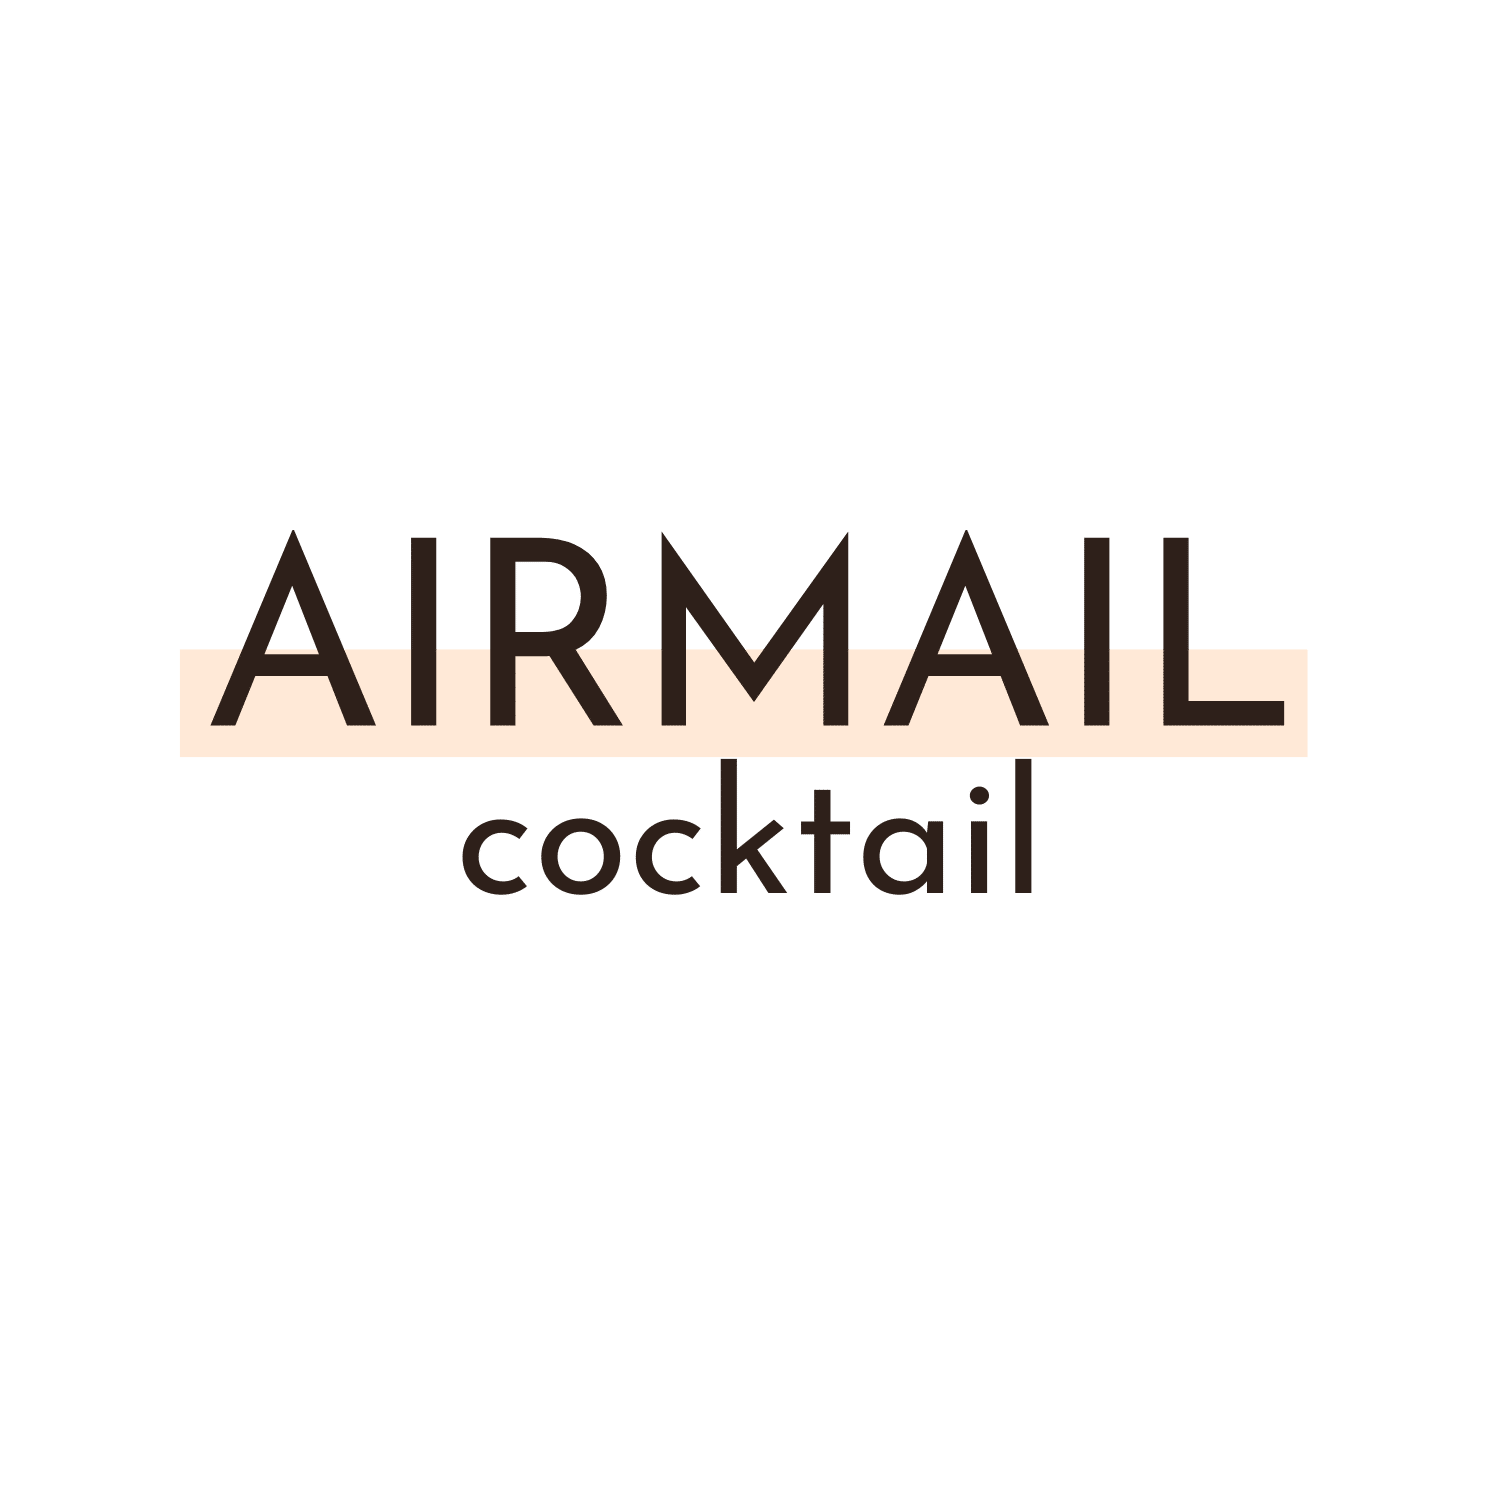 sidecar cognac logo AIRMAIL Cocktail